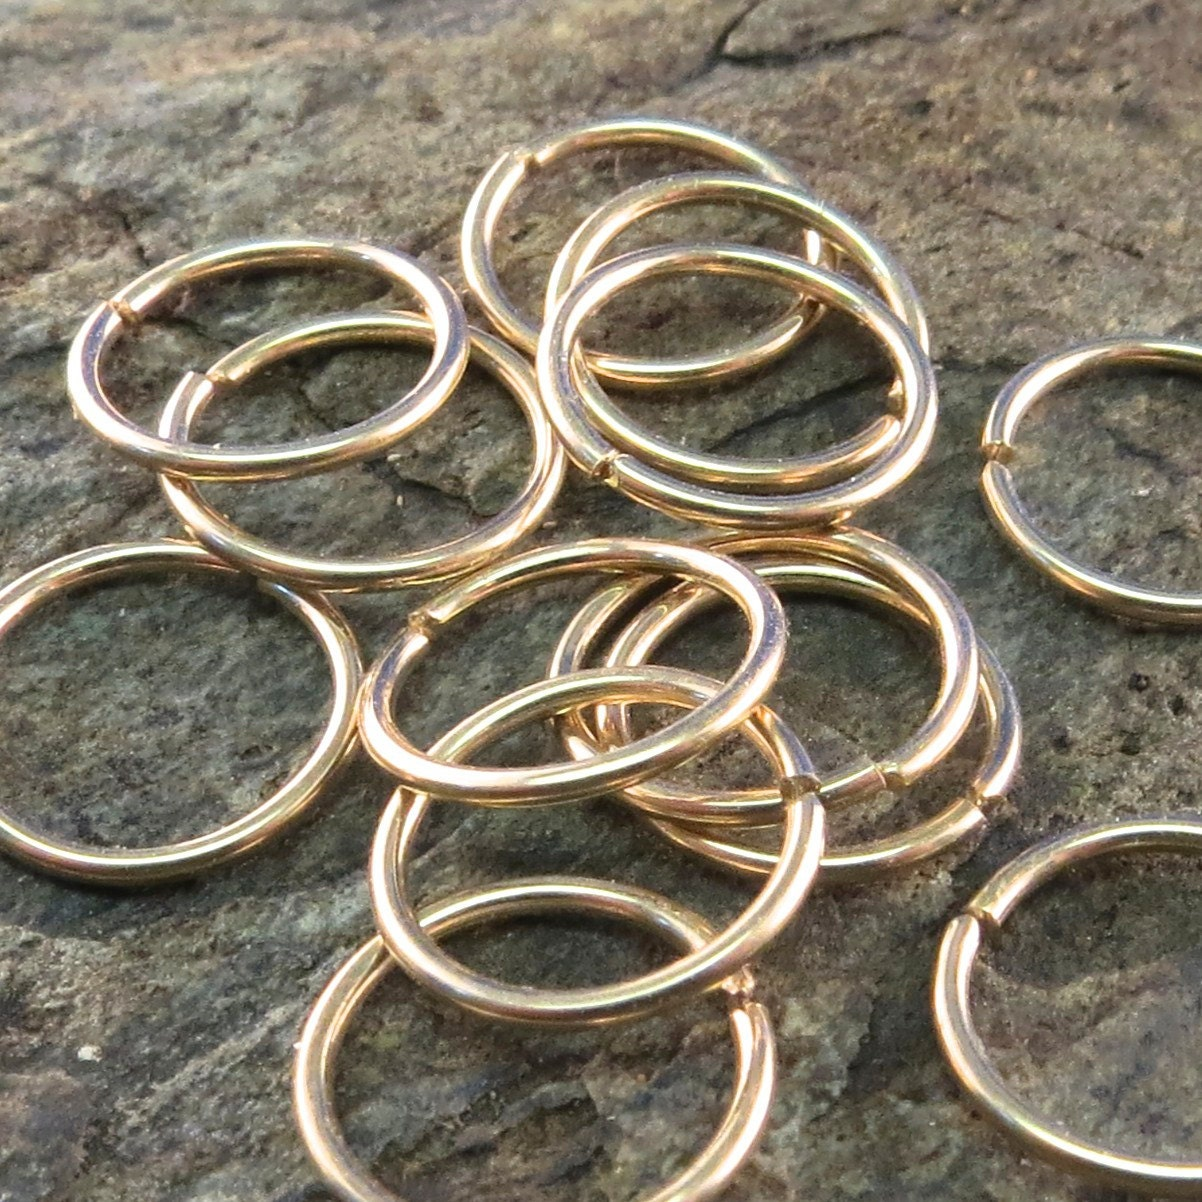 Cartilage Ring Gold Nose Ring 20g Nose Hoop Septum Hoop Cartilage Hoop Helix Conch Sterling Silver Niobium No 00e278